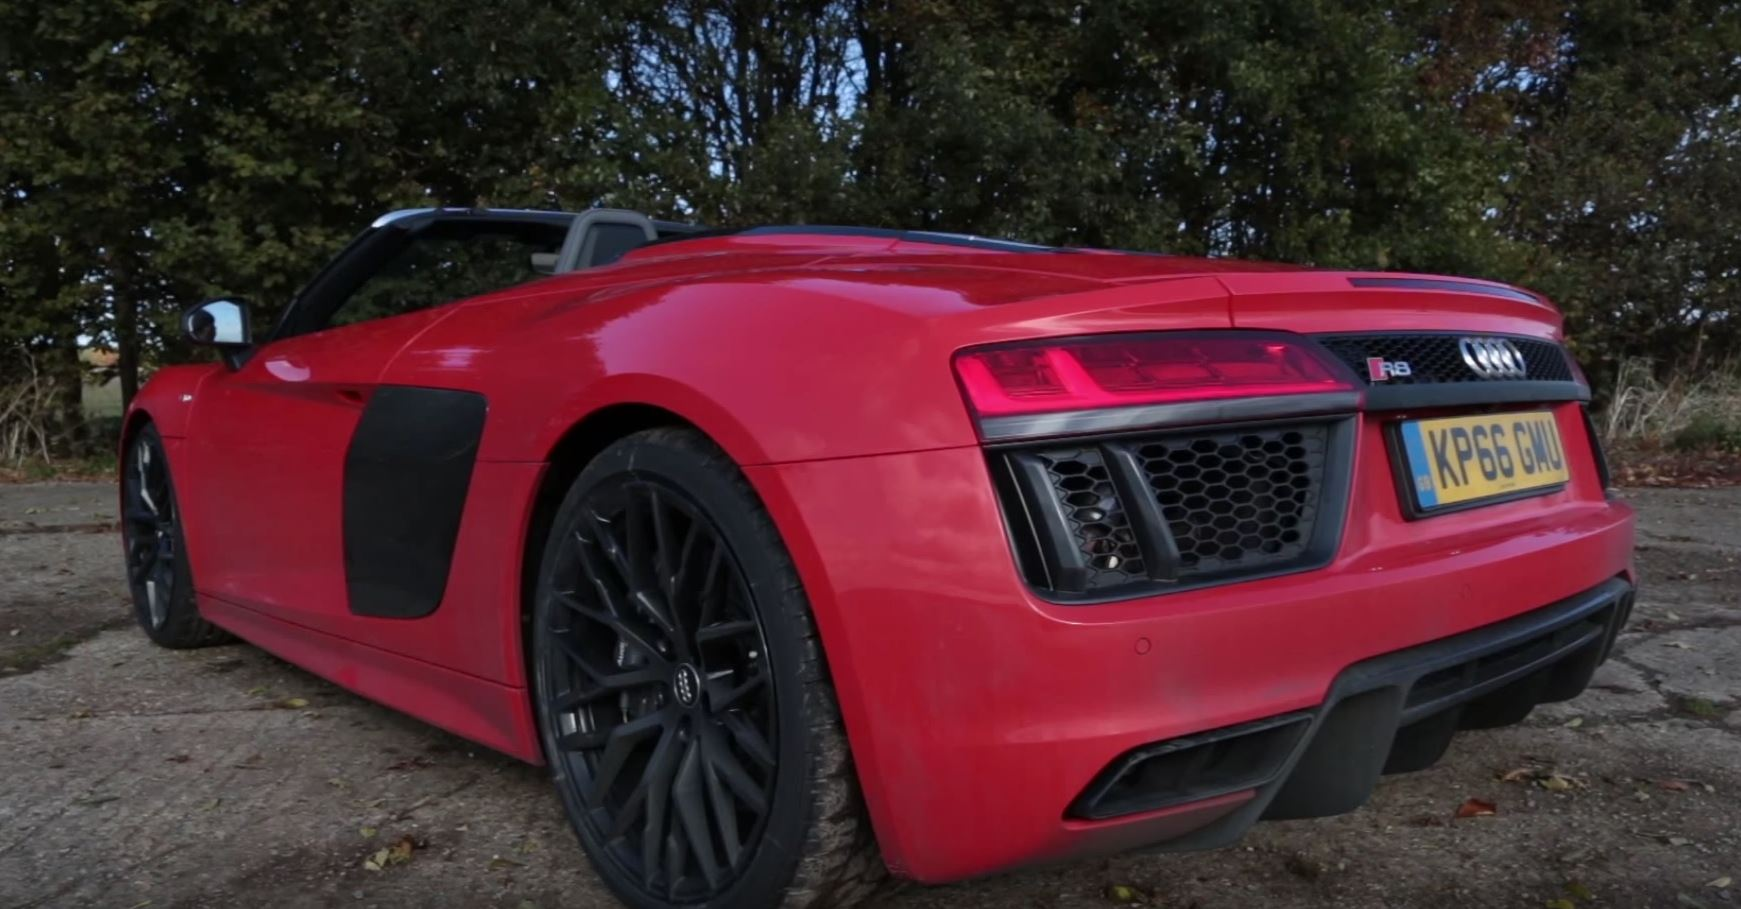 How Do You Rate The Audi R8 Spyder Roof Opening Mechanism